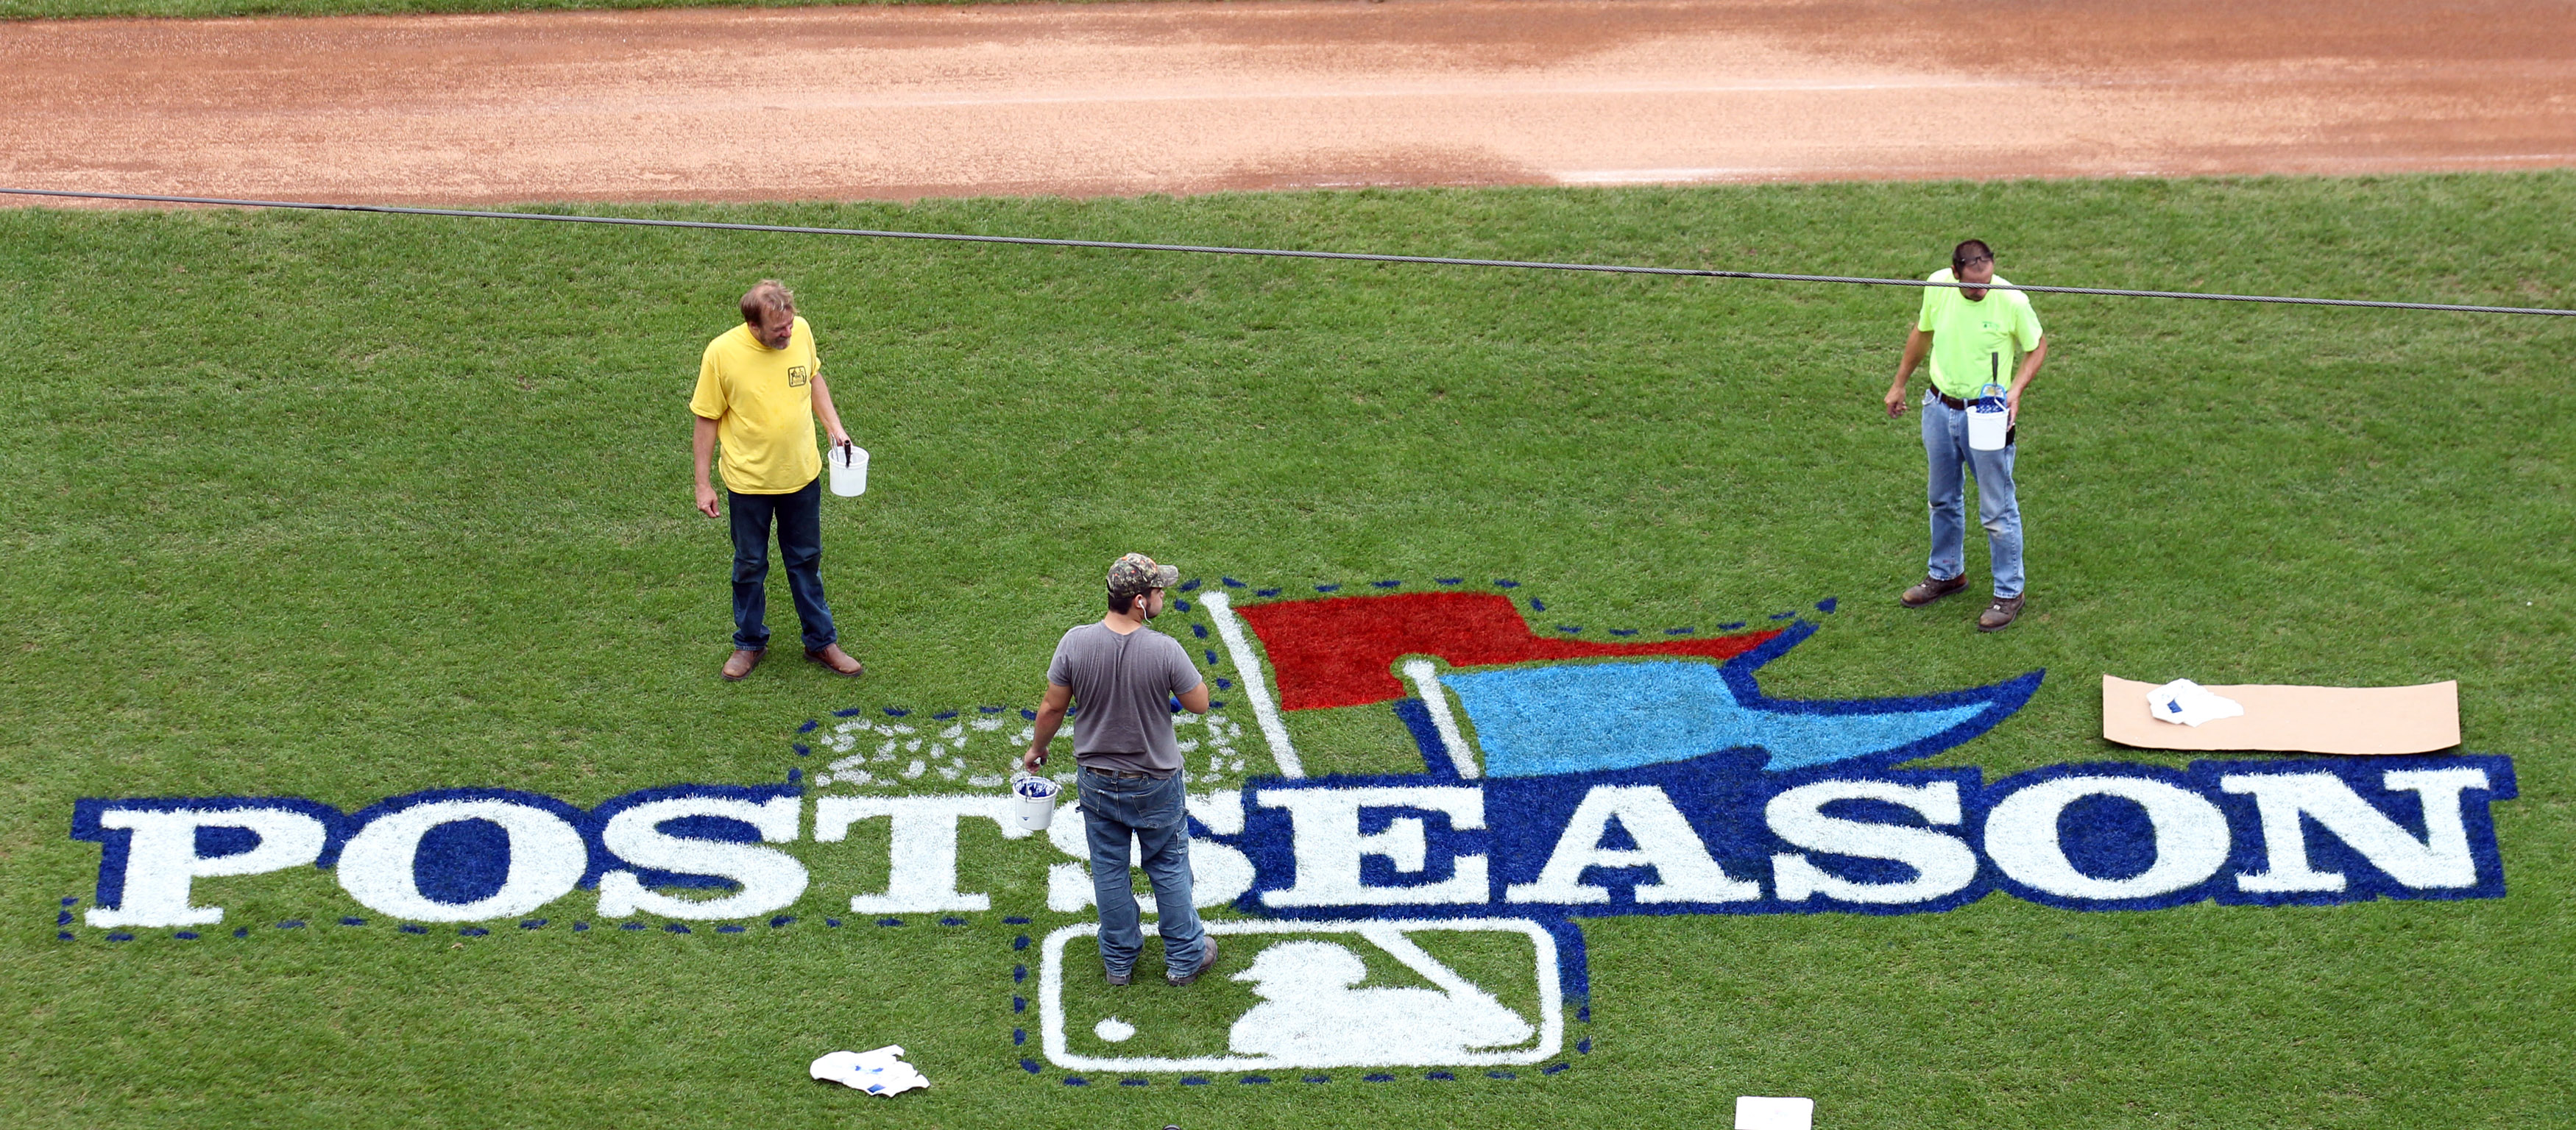 Painters from Warren Sign Company stop to check their progress as they paint a postseason logo on the field at Busch Stadium in St. Louis on October 1, 2013. The St. Louis Cardinals will face the winner of the Cincinnati Reds-Pittsburgh Pirates game on October 4, 2013 for game one.   UPI/Bill Greenblatt